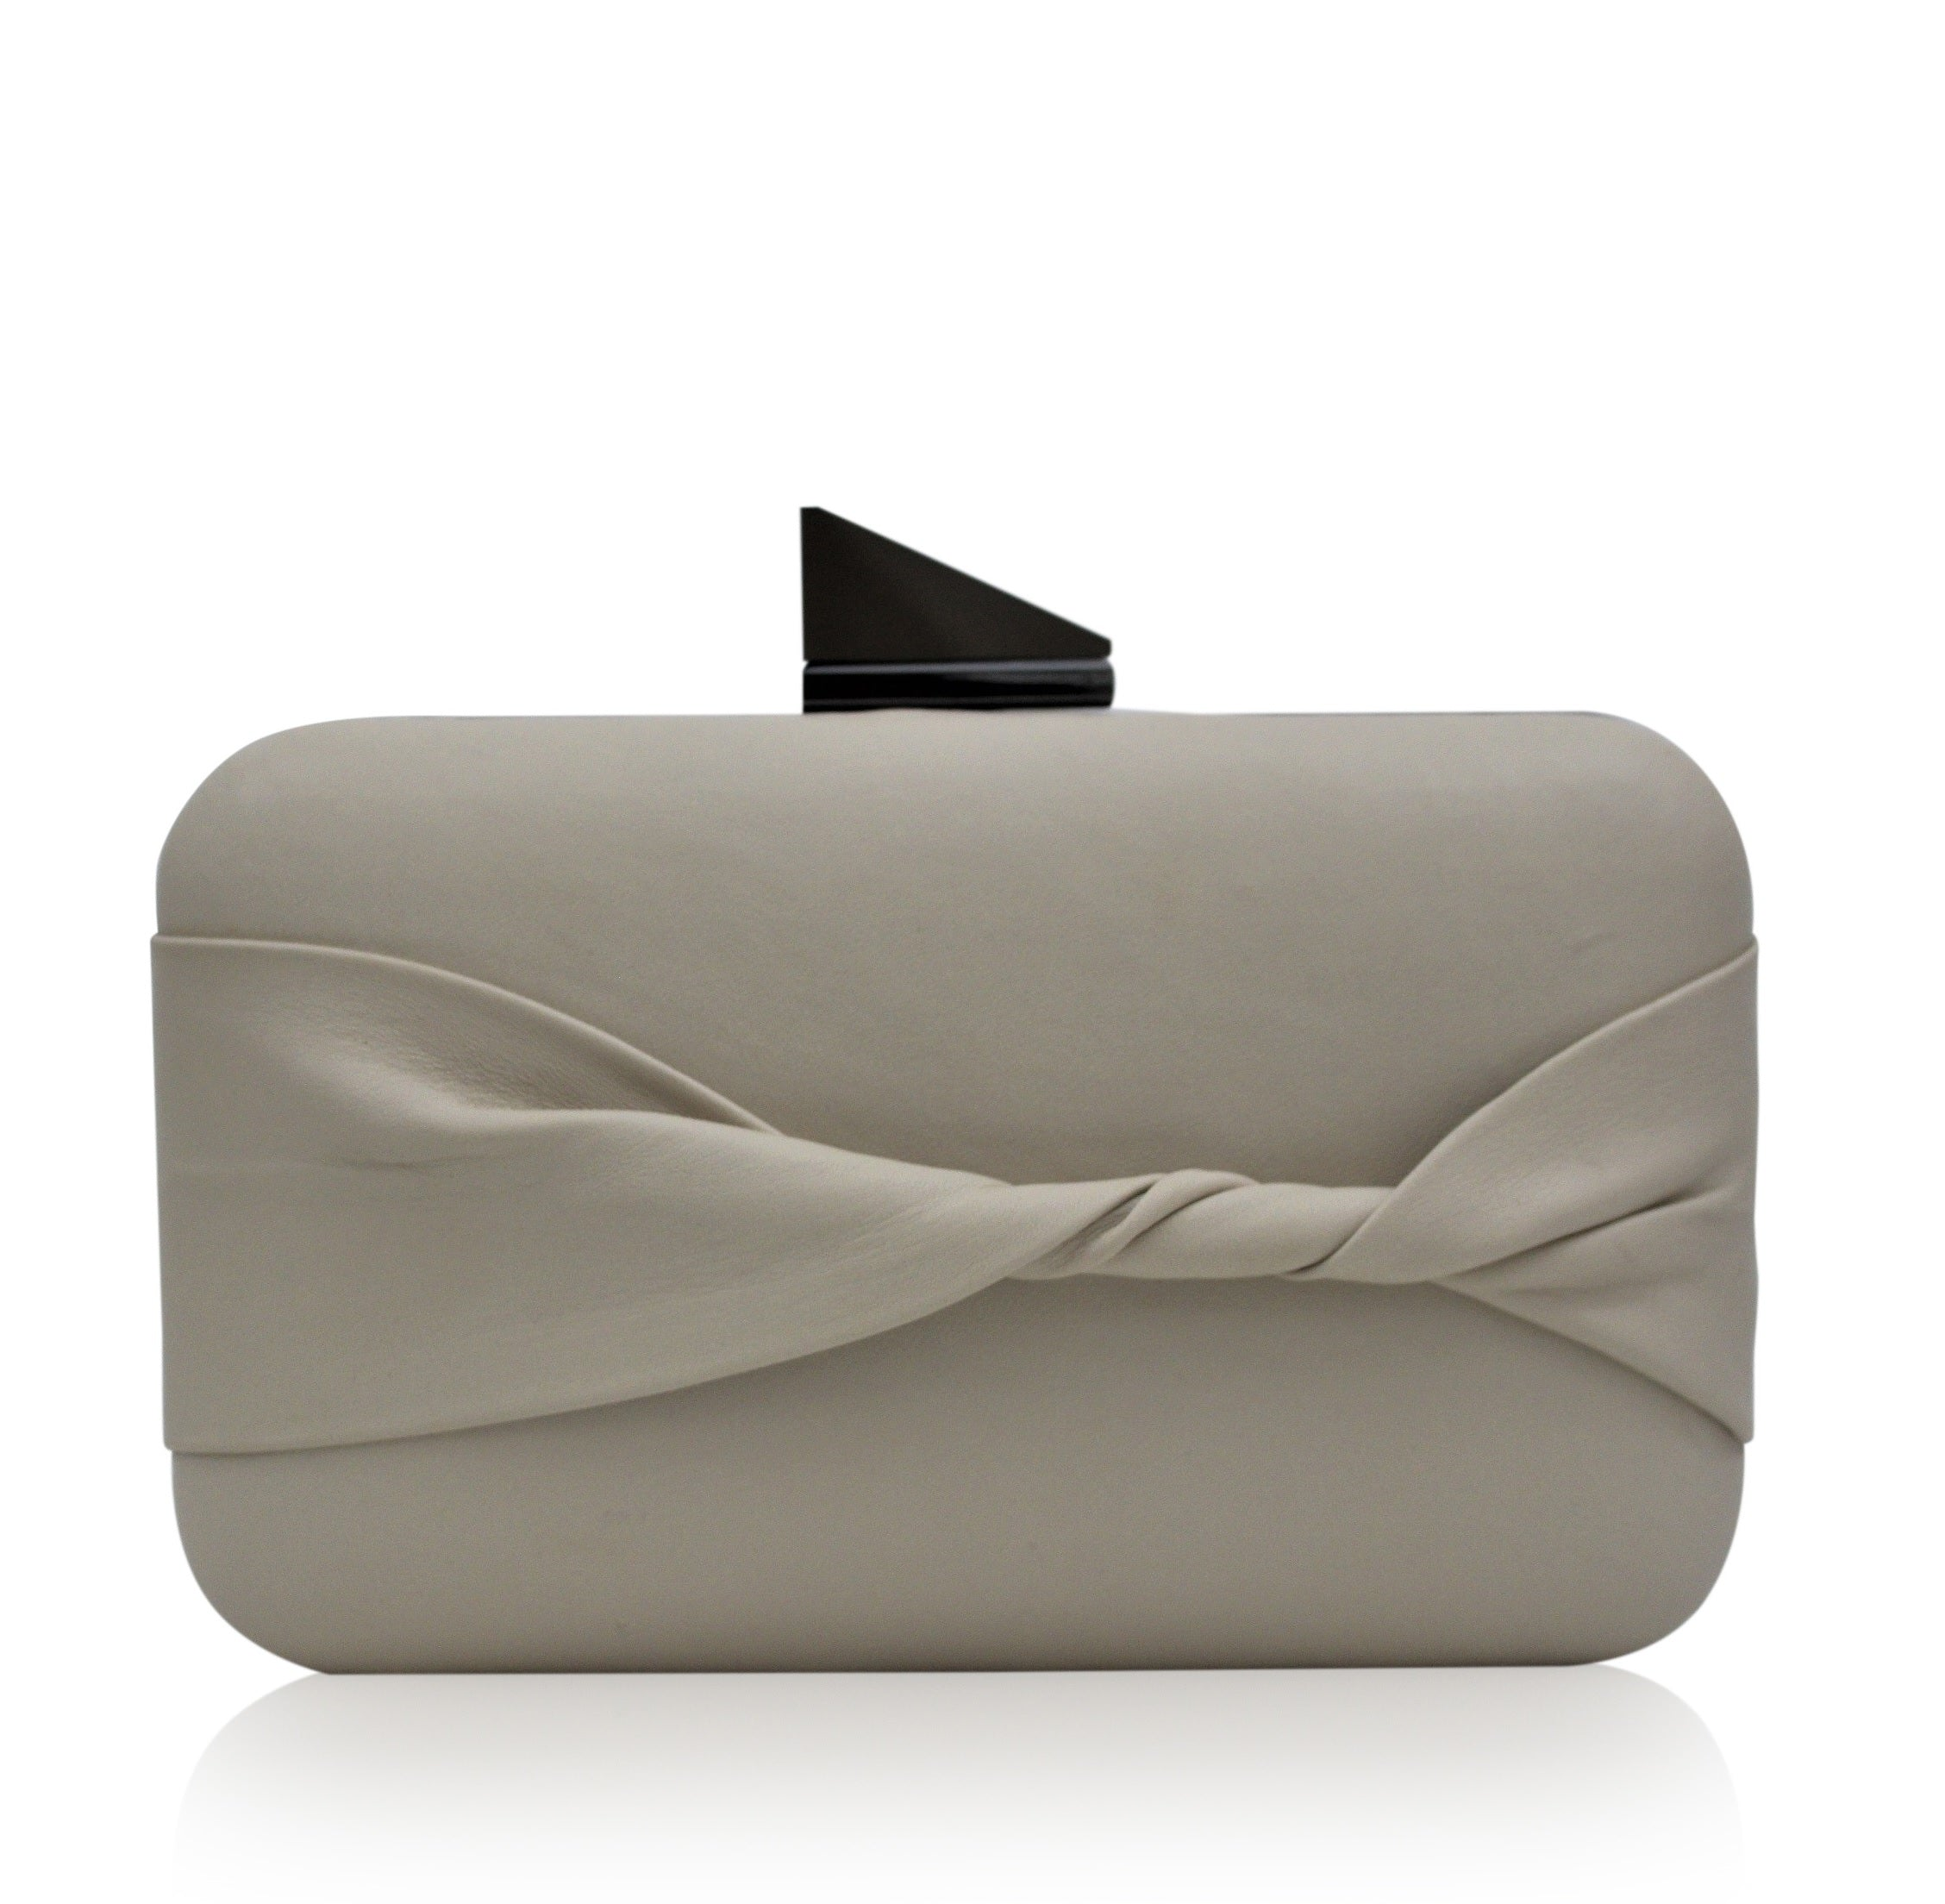 Kamilah Willacy - Shelie Oversized Clutch in Bone